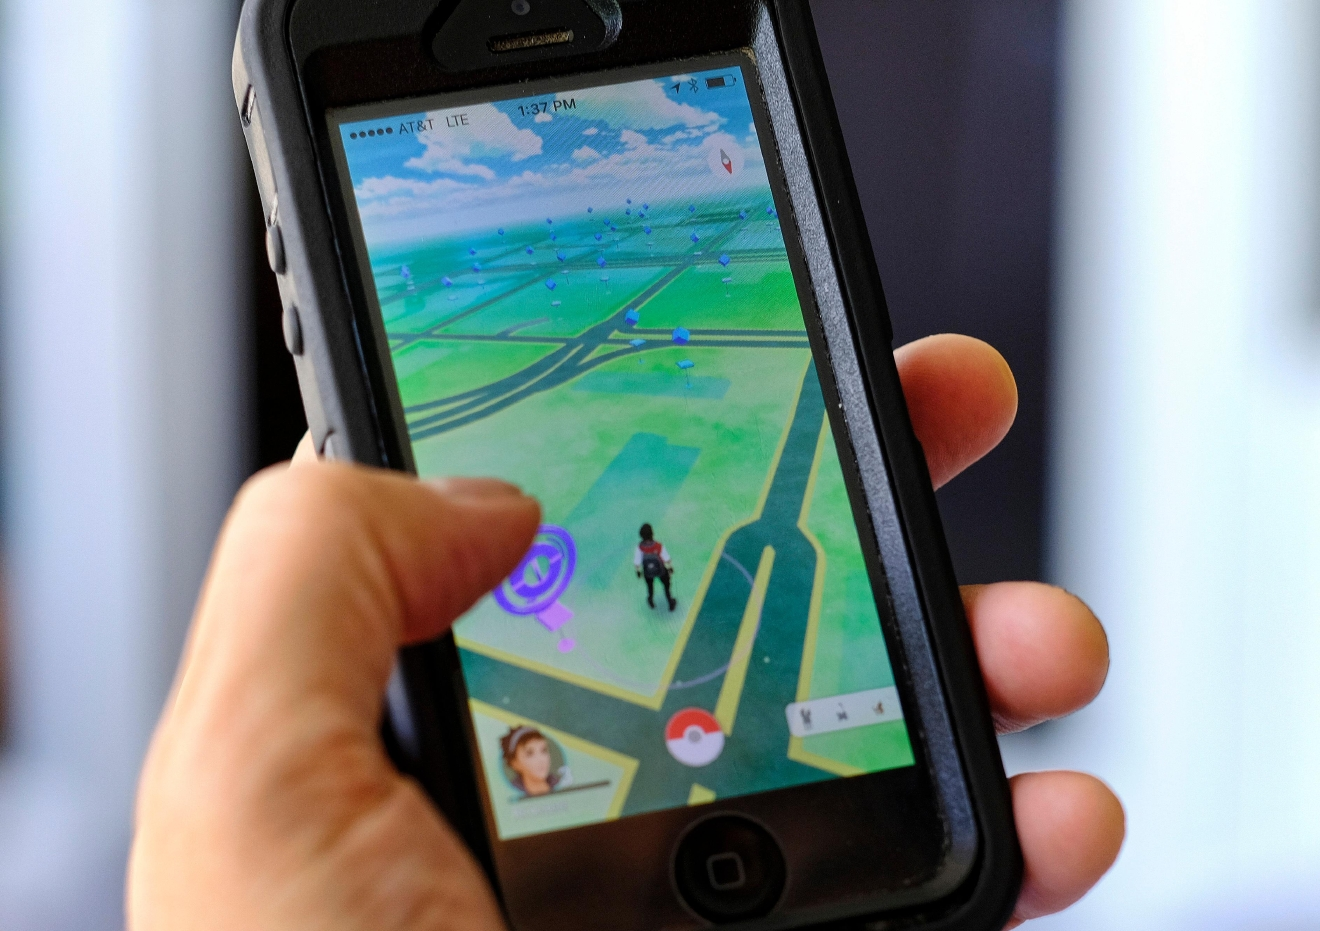 Pokemon Go is displayed on a cell phone in Los Angeles on Friday, July 8, 2016. Just days after being made available in the U.S., the mobile game Pokemon Go has jumped to become the top-grossing app in the App Store.  (AP Photo/Richard Vogel)